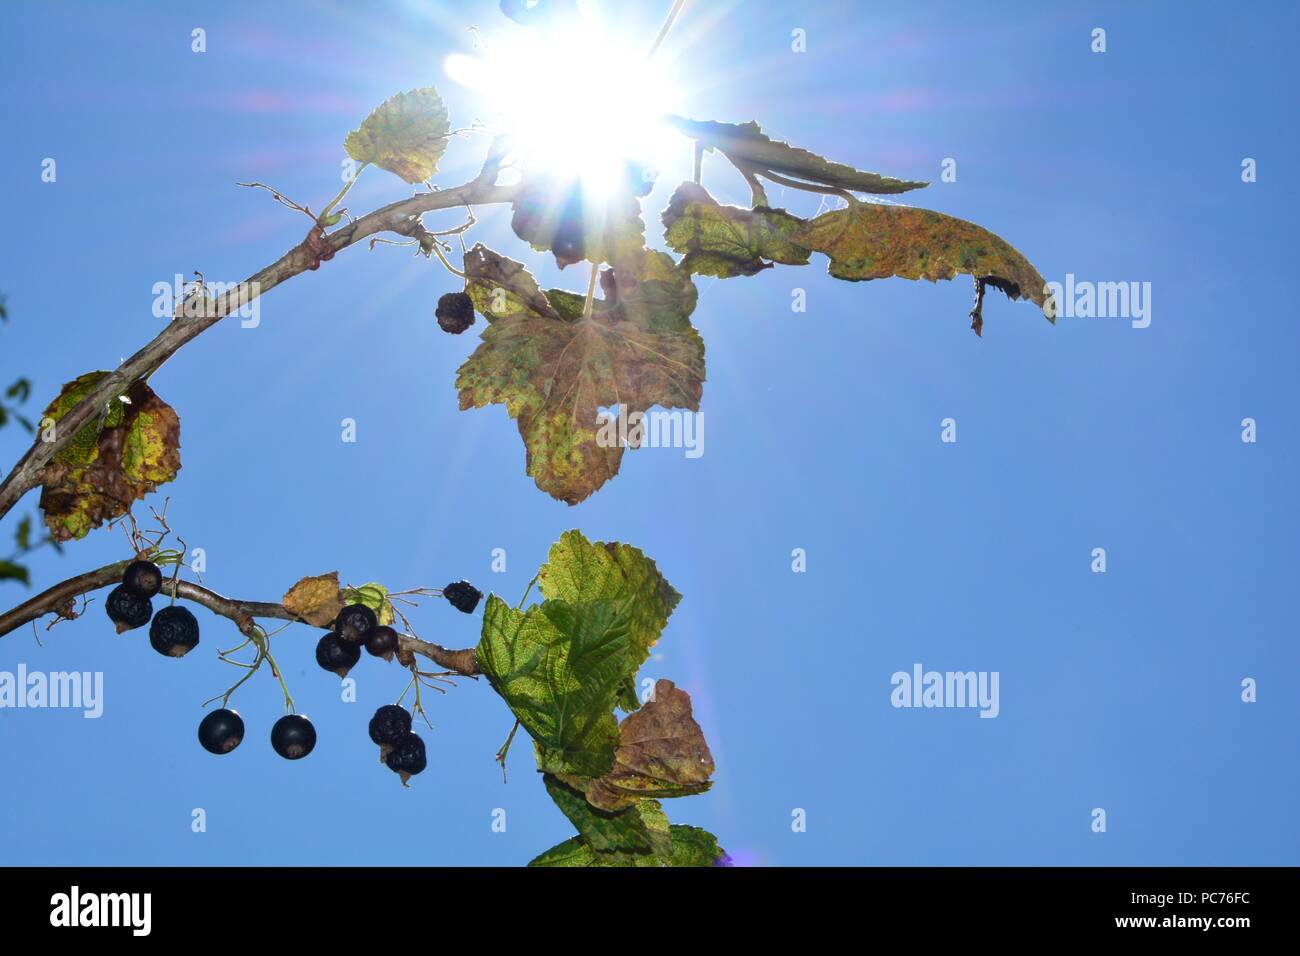 Dried berries with brown leaves on the branch in front of blue sky with sunrays - Stock Image